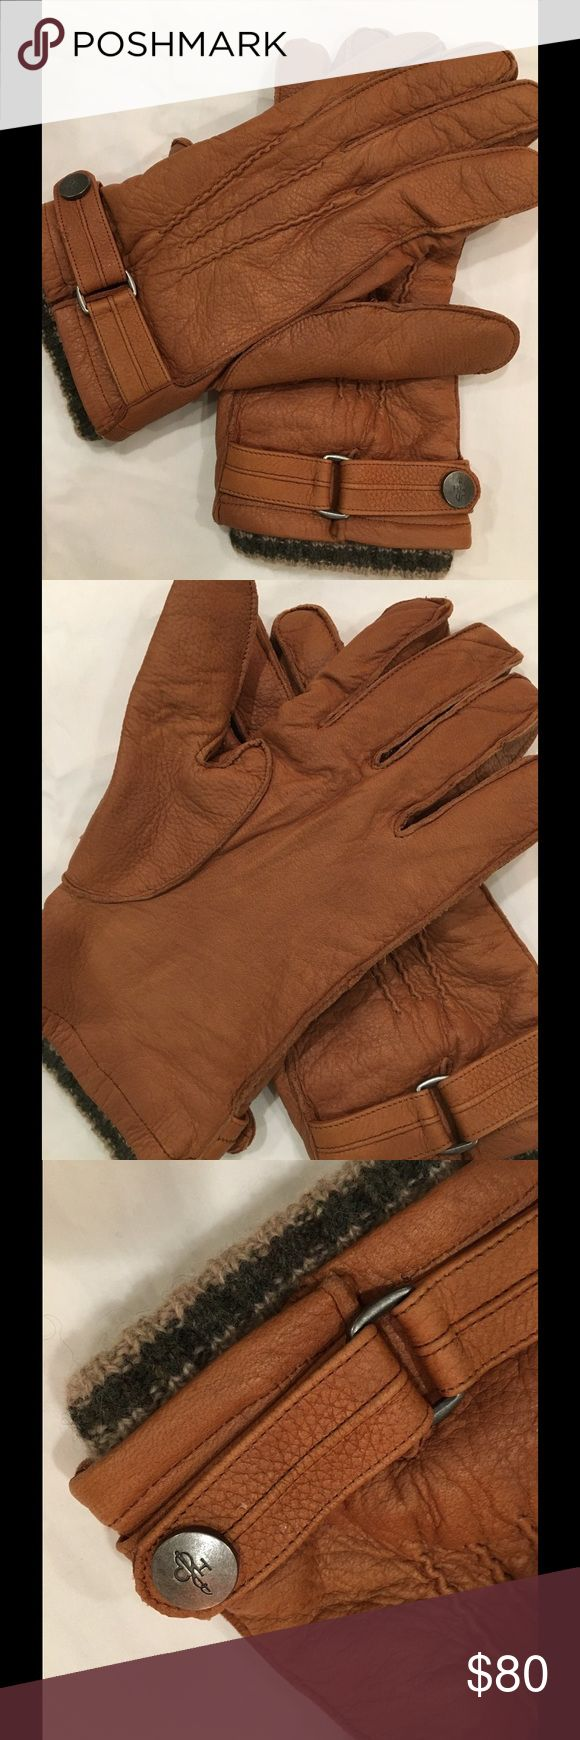 Cole haan black leather gloves - Cole Haan Leather Gloves